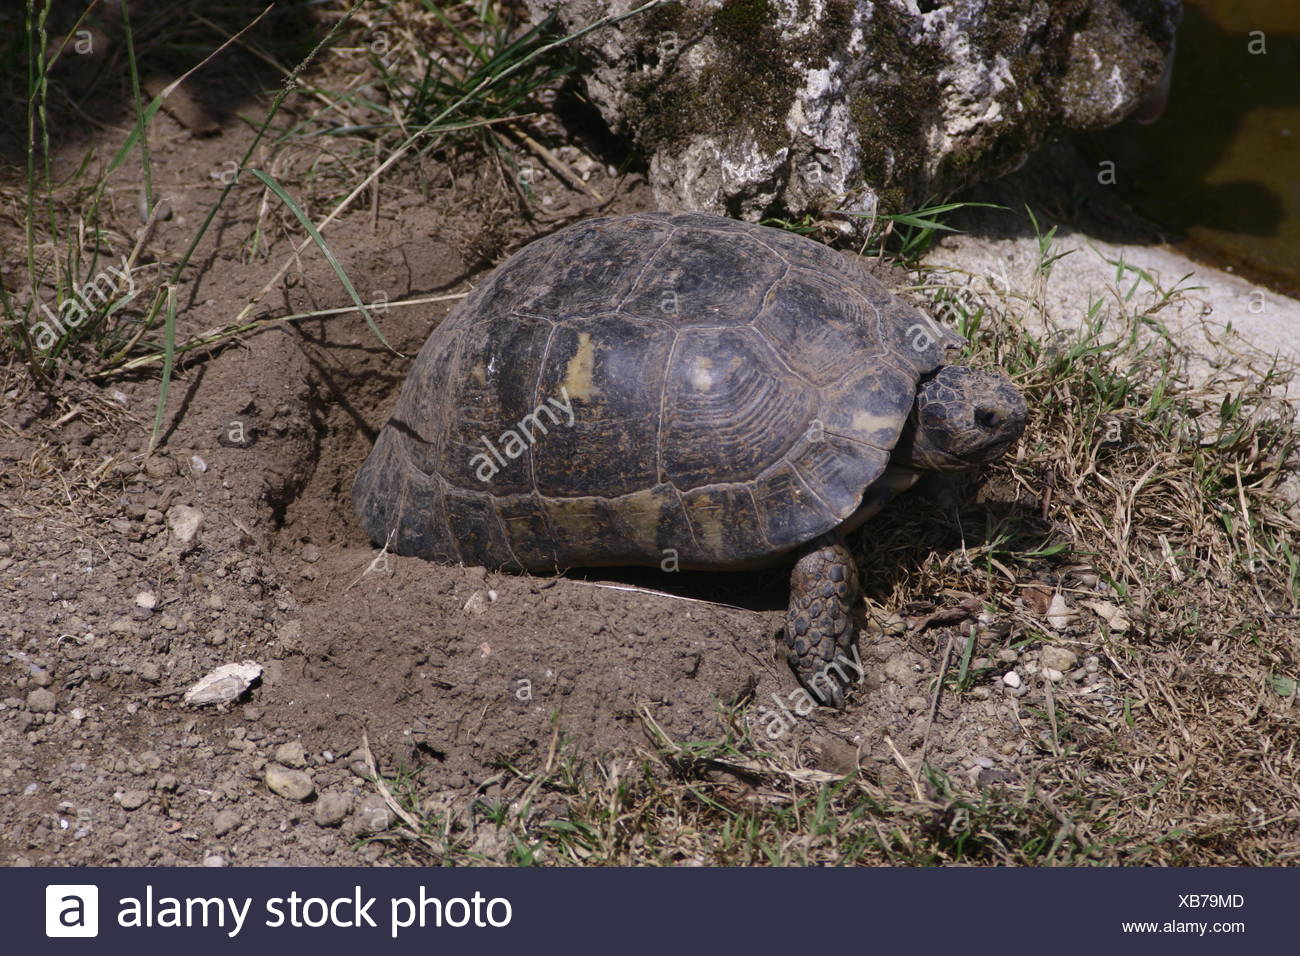 turtle lays eggs - Stock Image